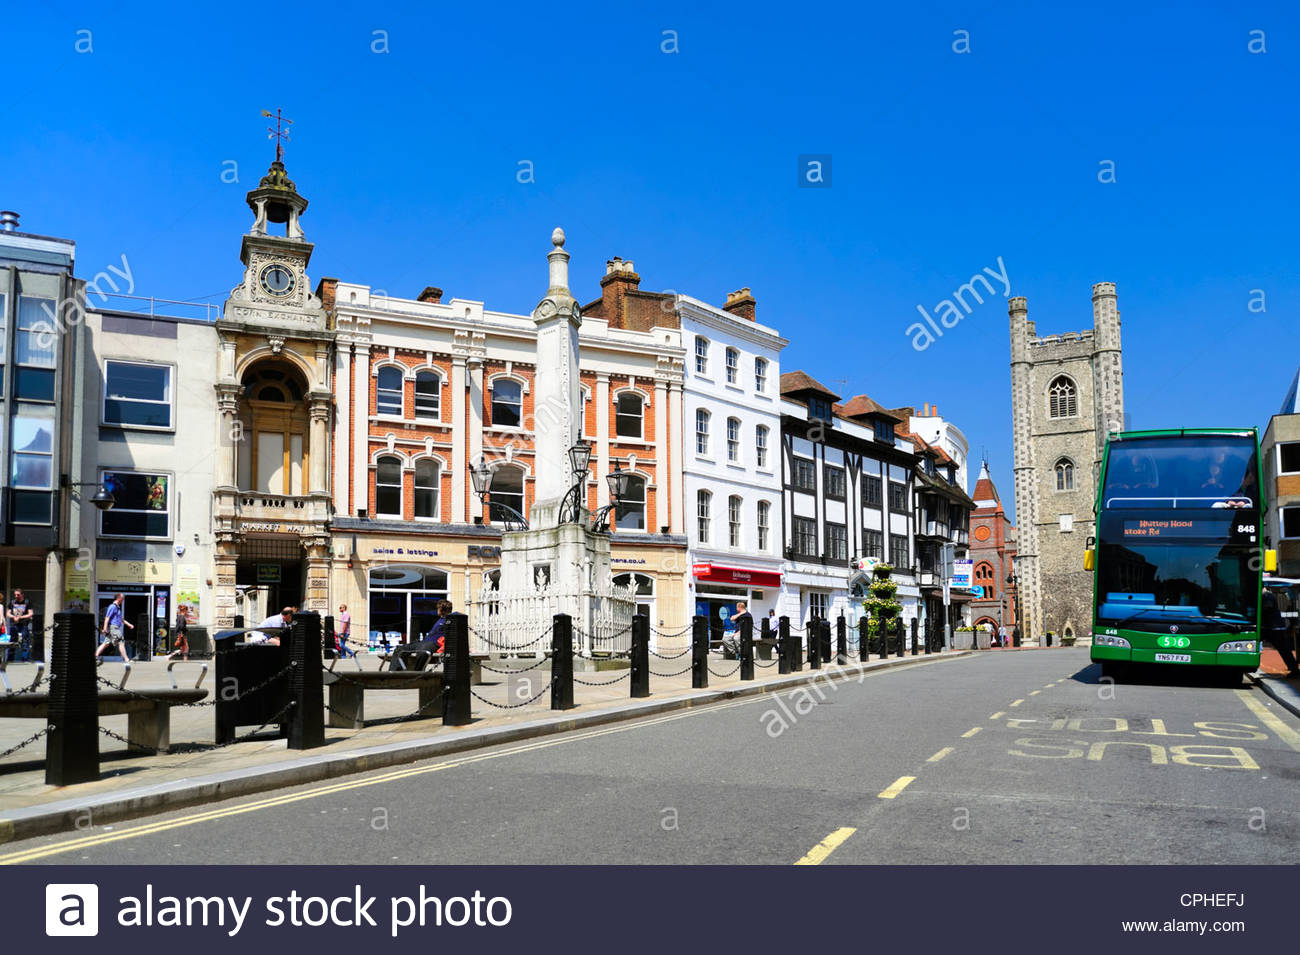 Town Centre in Reading, Berkshire, UK. - Stock Image